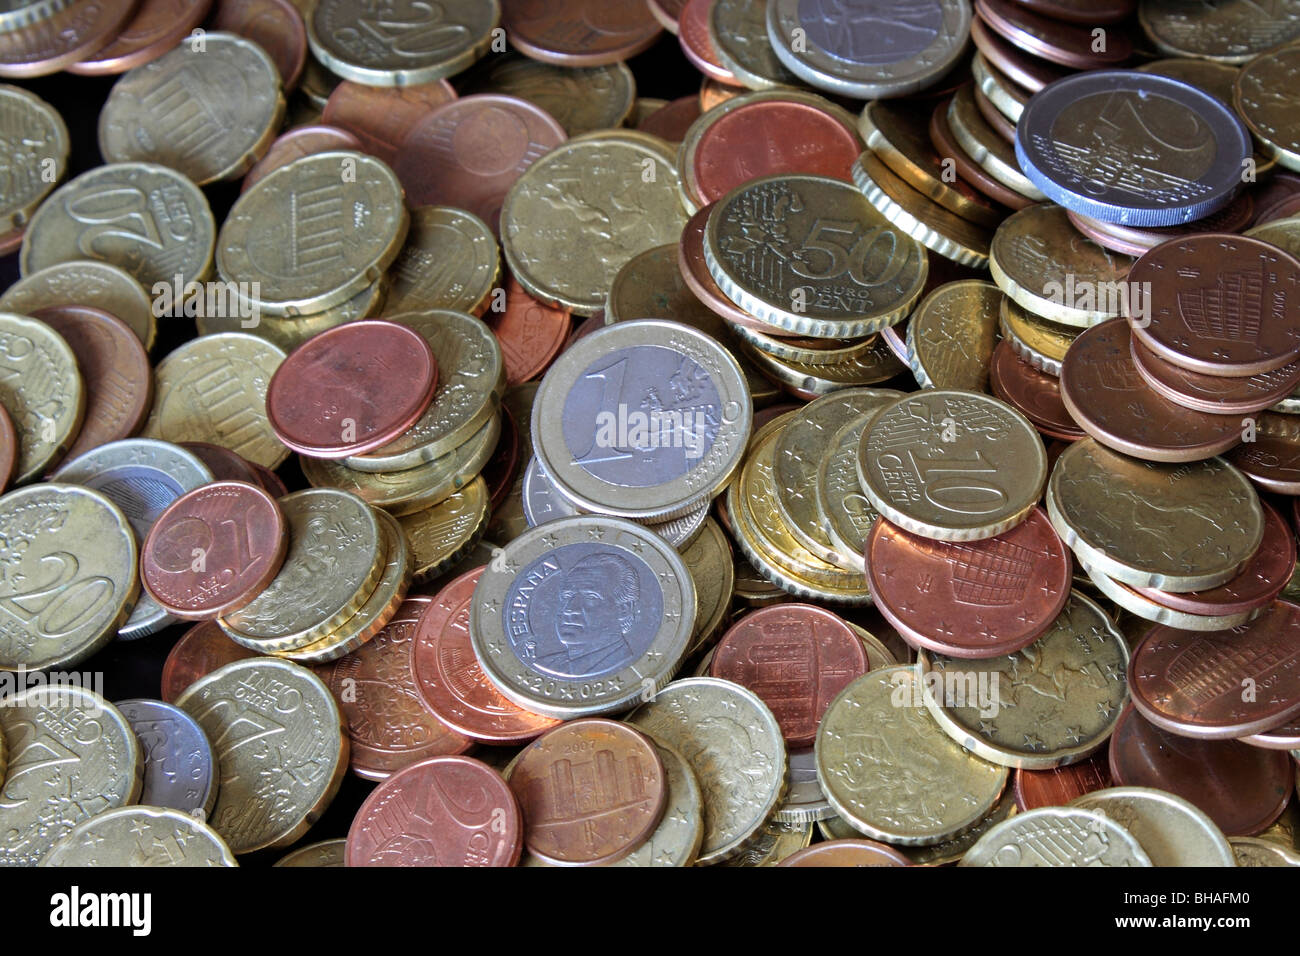 Euro Coins - Stock Image